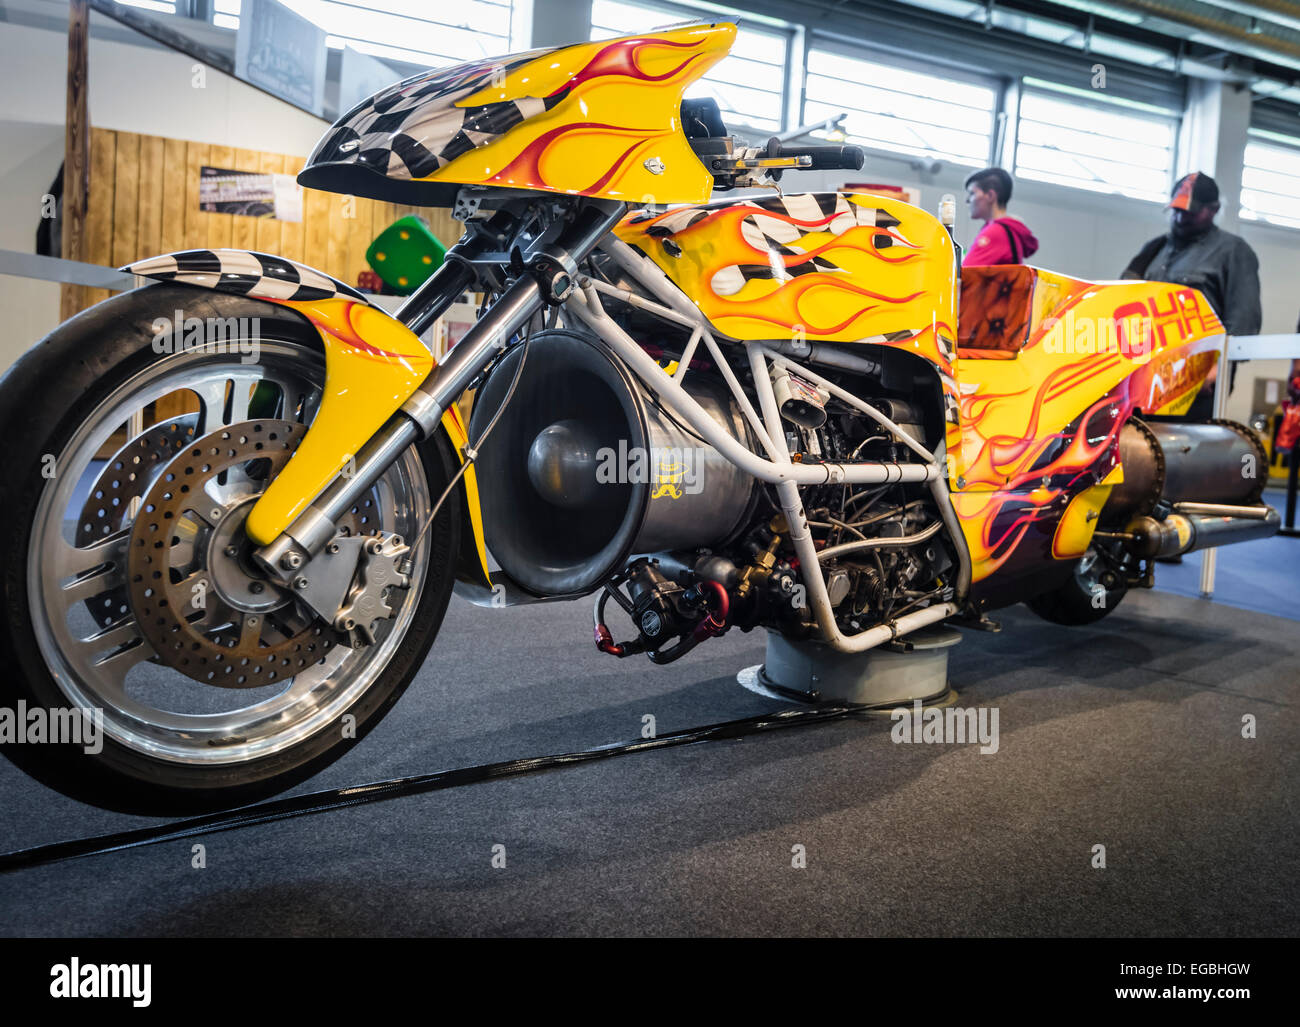 zurich switzerland 20th feb 2015 hellfire jet bike a drag race motorcycle EGBHGW - What if the Oppressor, Deluxo, Scramjet, Vigilante, Ruiner, etc. didn't have missiles?